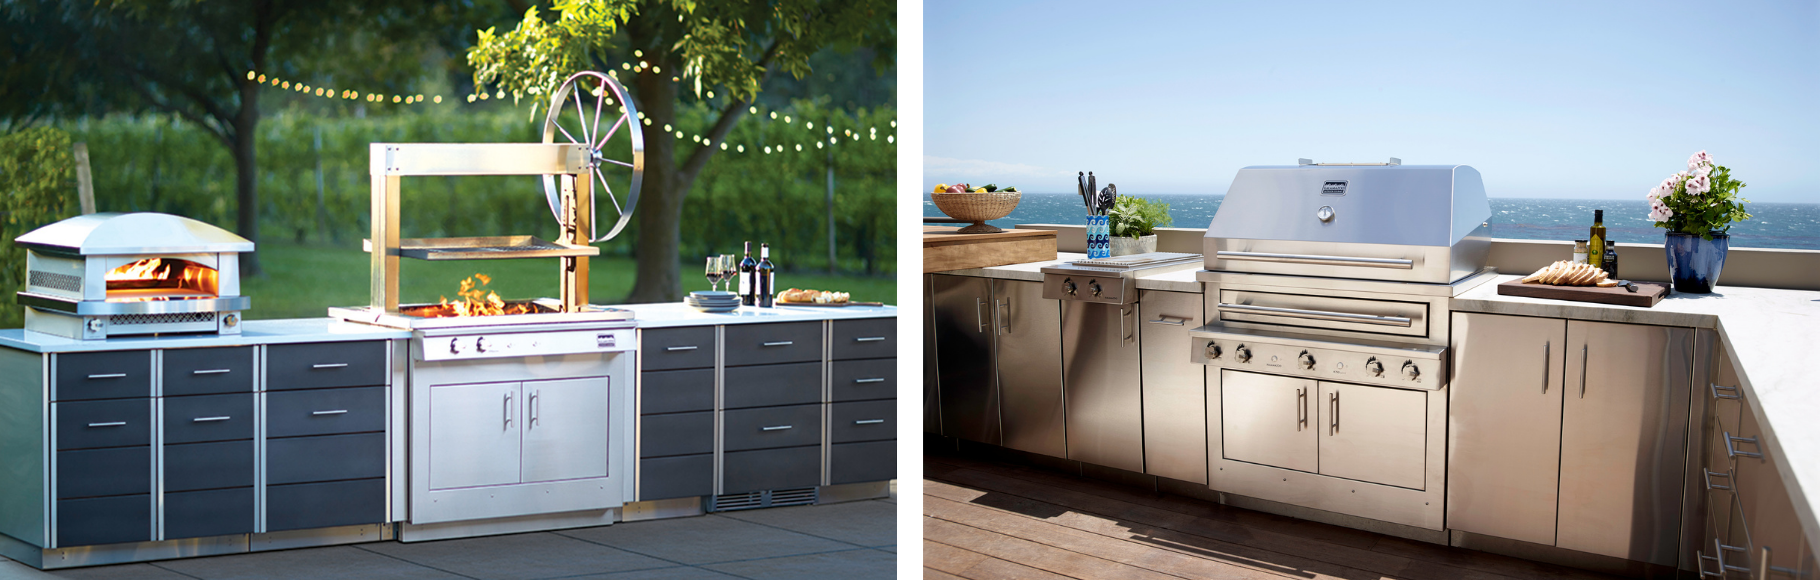 Kalamazoo Outdoor Kitchens with the Gaucho and built-in grills